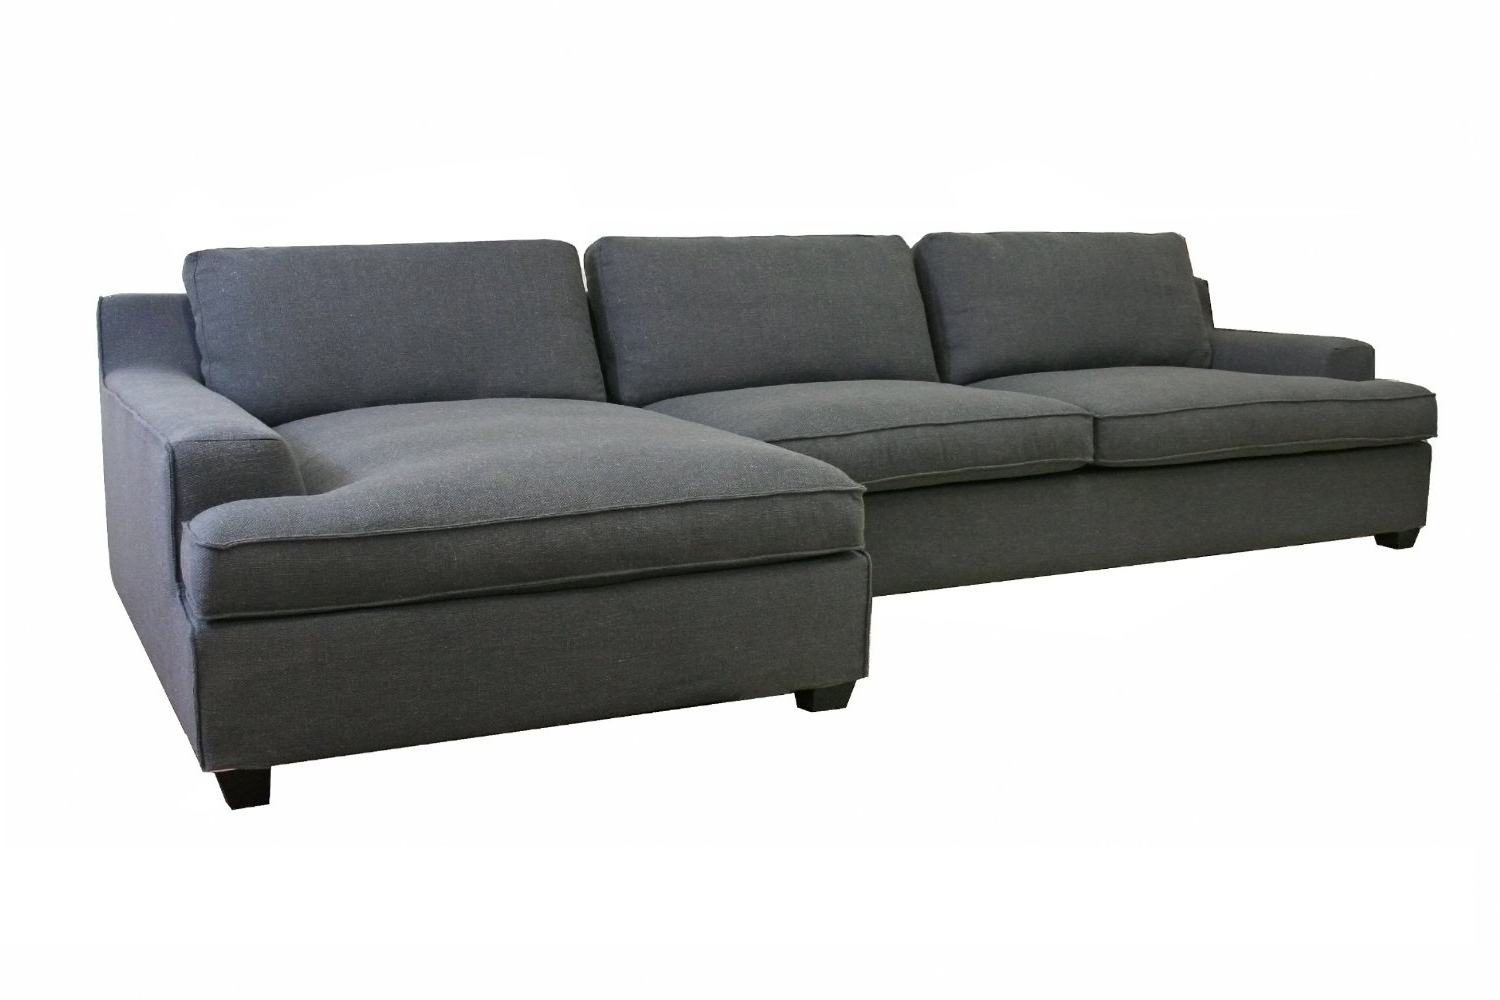 2018 Couches With Chaise Lounge Inside Awesome Couch With Chaise Lounge 81 On Sofas And Couches Ideas (View 3 of 15)